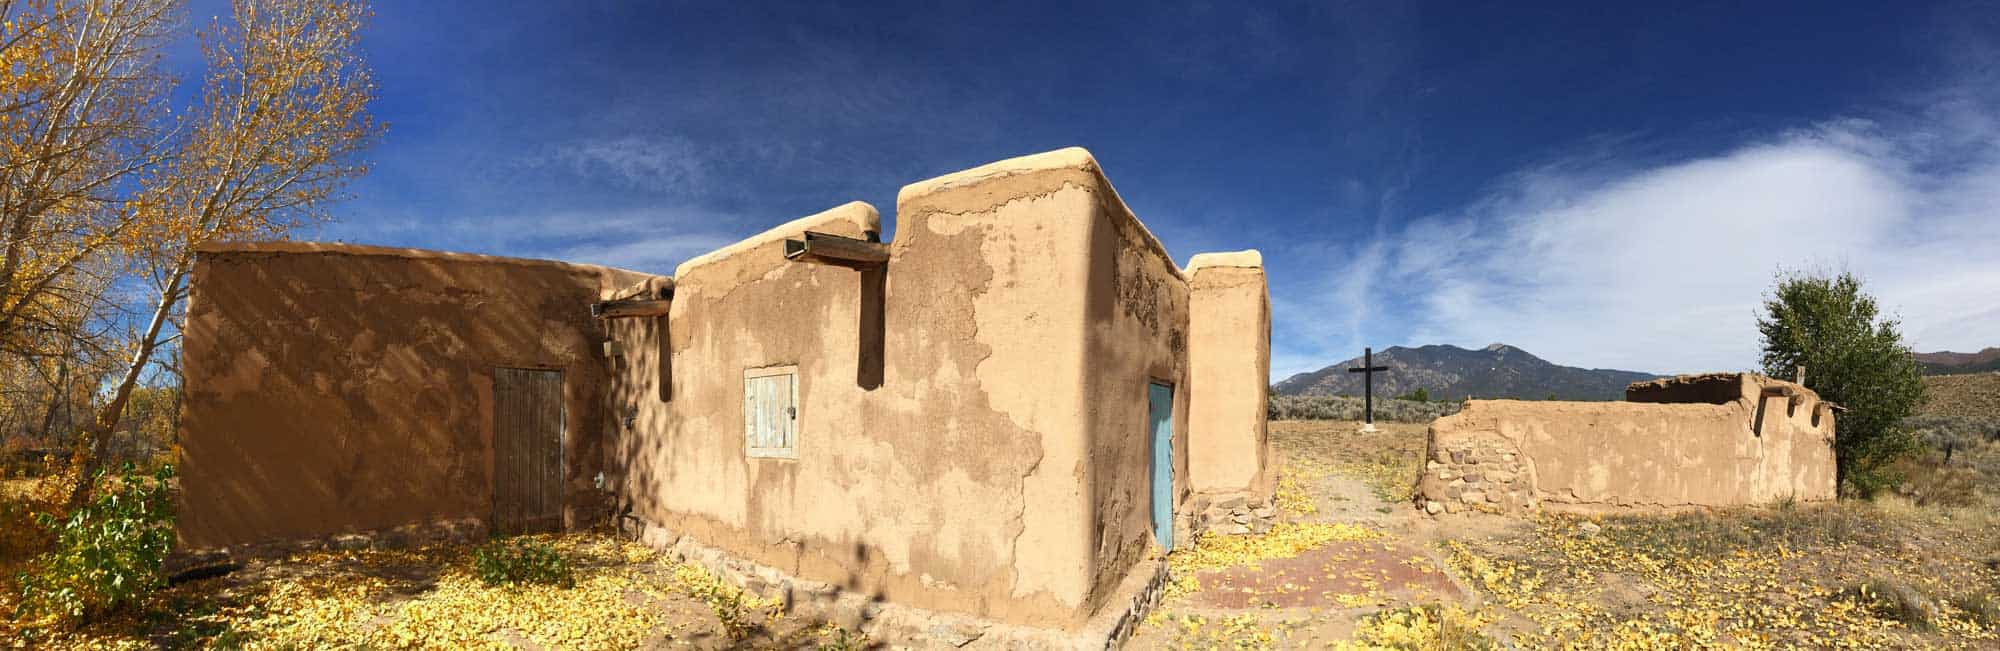 the back of the Morada in Taos New Mexico